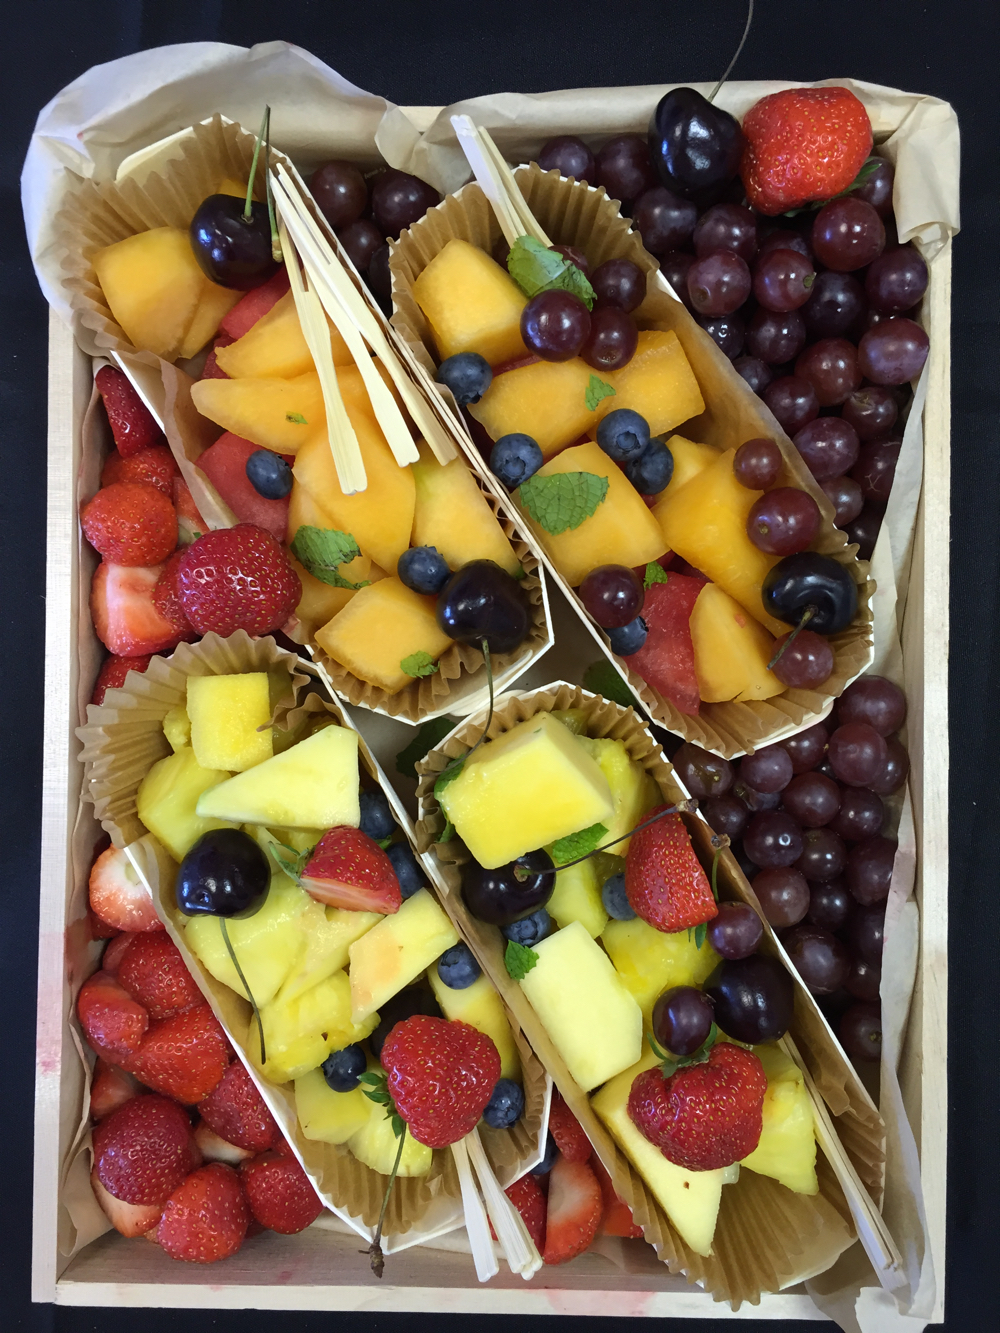 Fruit Salad Breakfast KLC School of Design